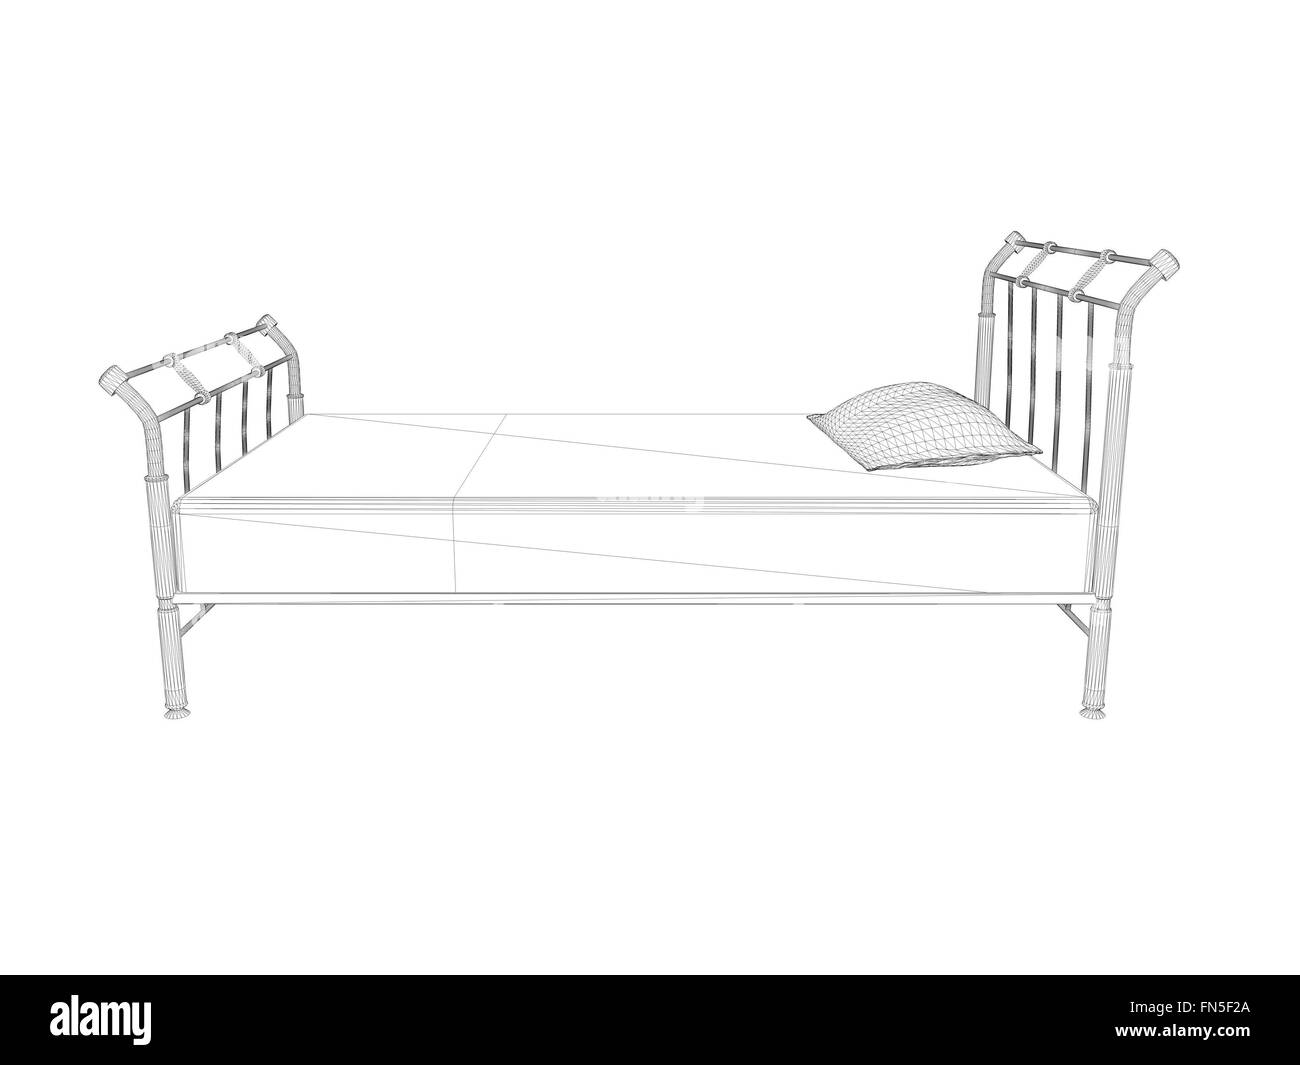 3d wireframe bed drawing illustration isolated on white background ...